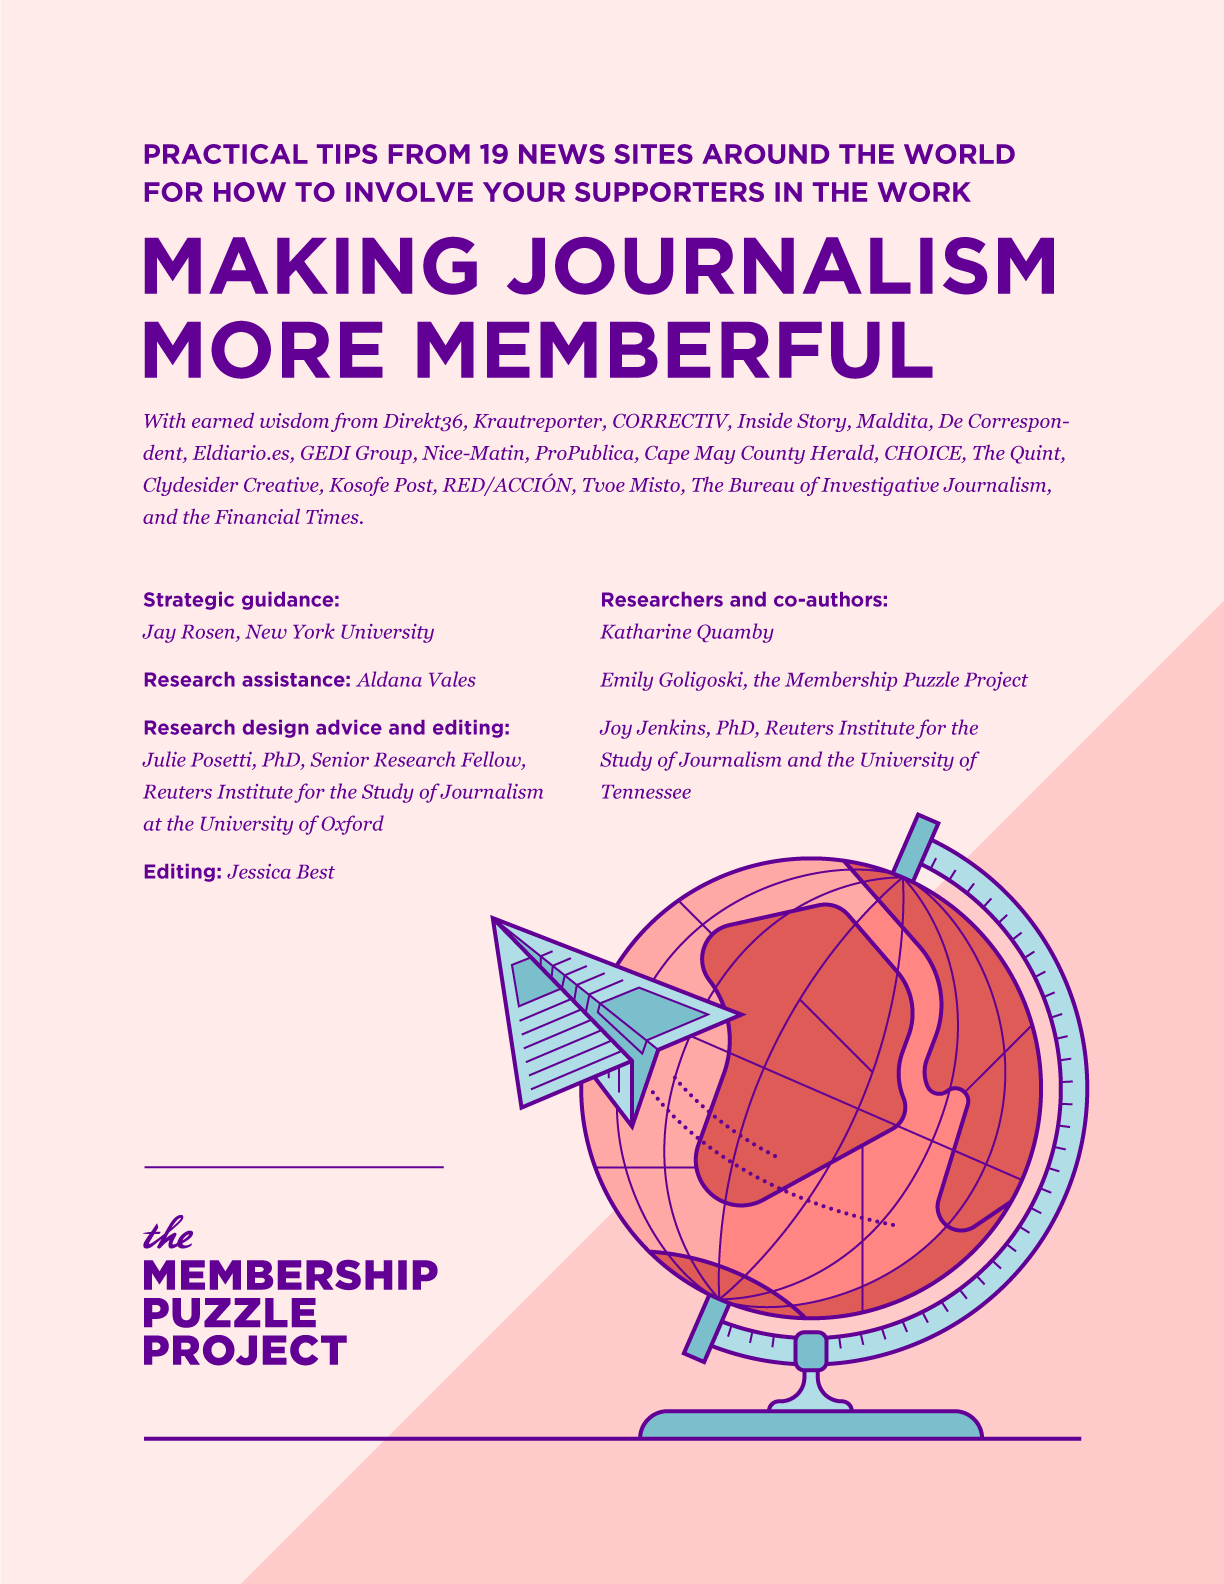 mpp_eg_jr_memberful_routines_report_cover_01.png